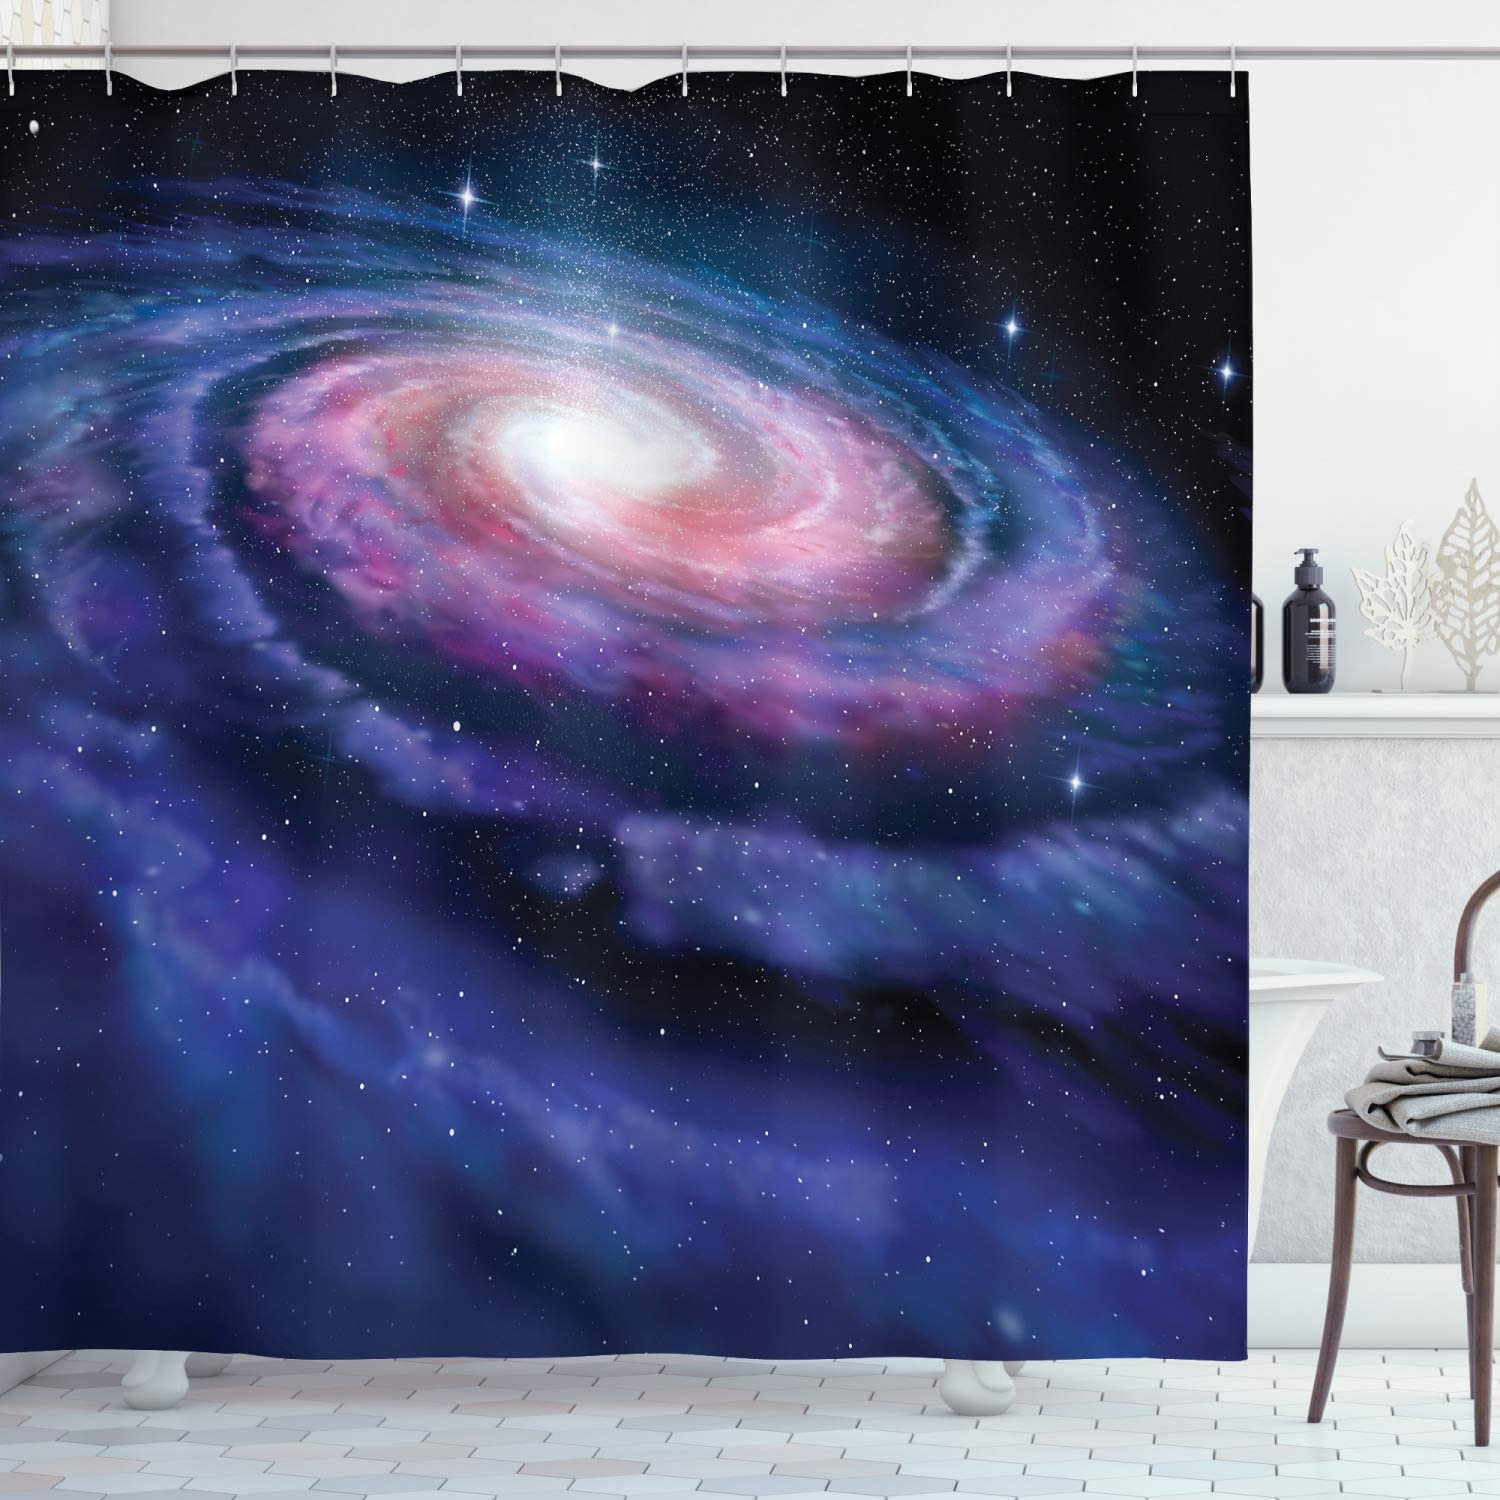 Amazon Com Ambesonne Outer Space Shower Curtain Spiral Cosmic Energy With Dark Nebula Cloud Burst Solar System Universe Image Cloth Fabric Bathroom Decor Set With Hooks 70 Long Purple Blue Home Kitchen